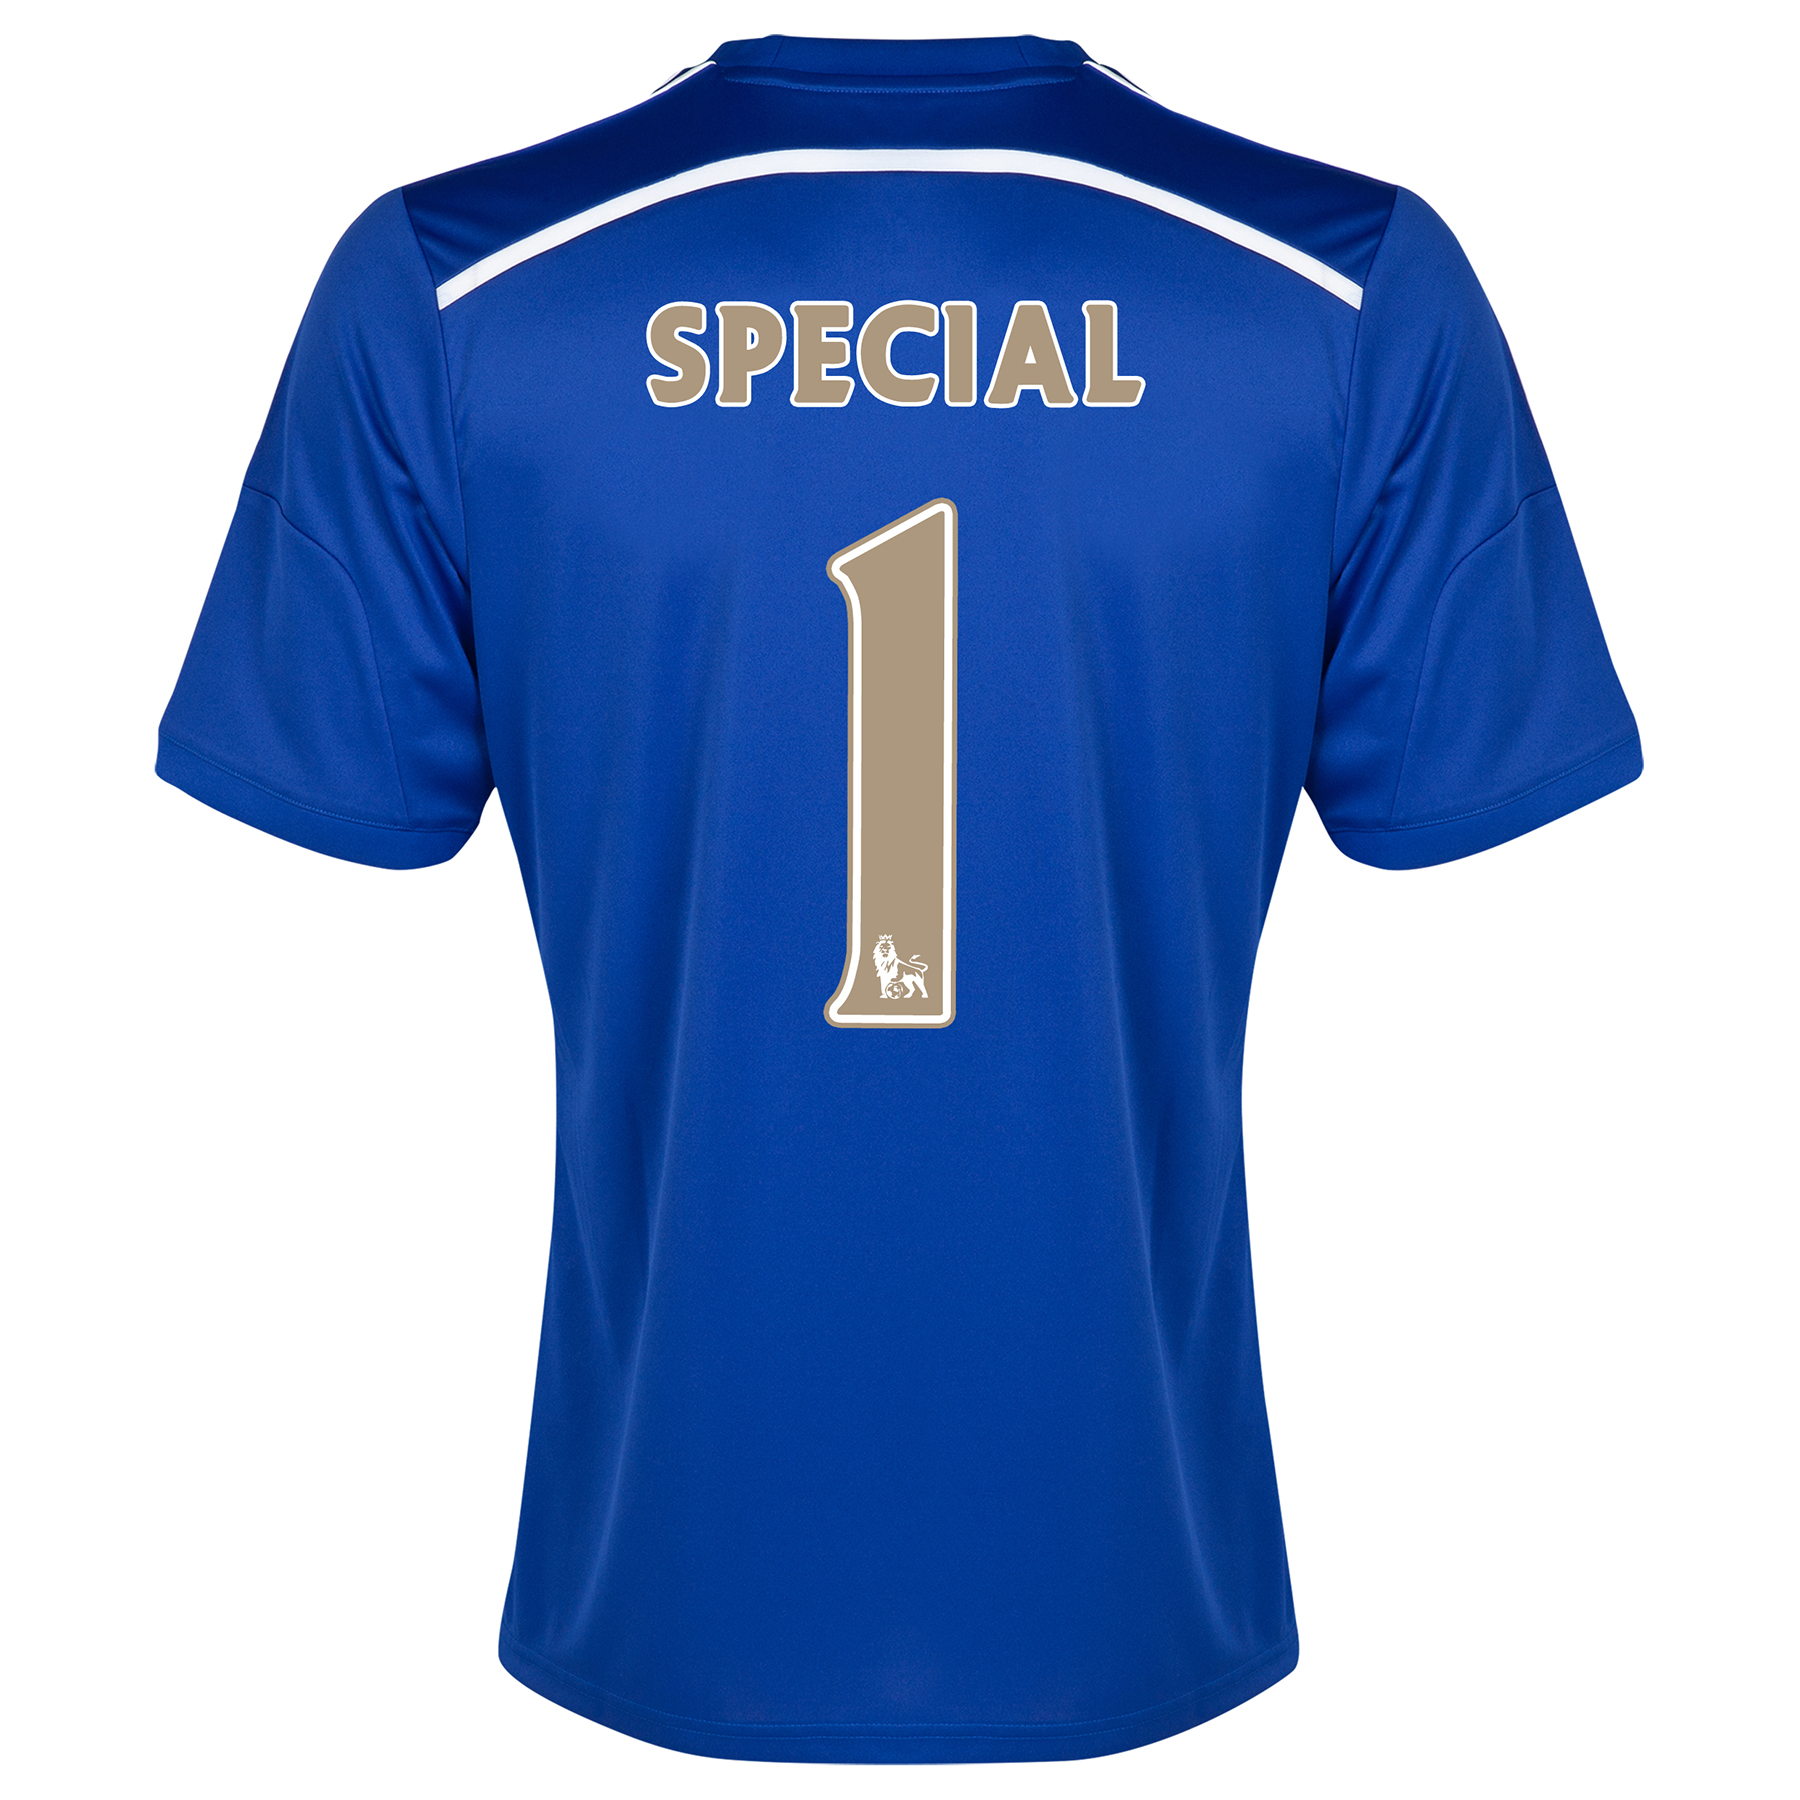 Chelsea Home Shirt 2014/15 - Outsize Blue with Special 1 printing